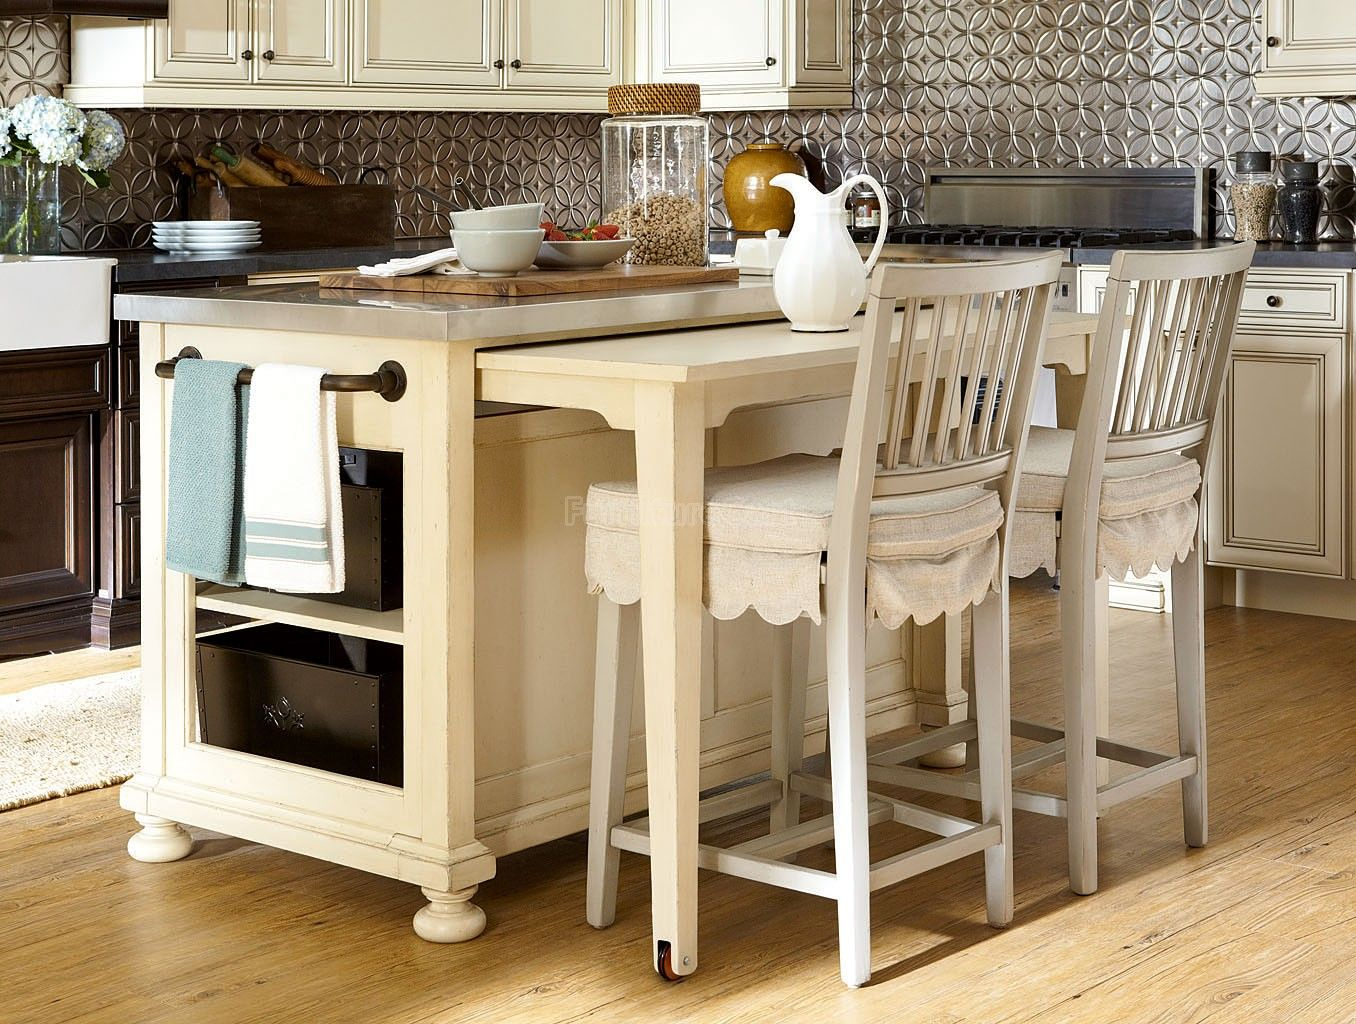 river house kitchen island set river boat kitchen island with seating portable kitchen on kitchen island id=28196